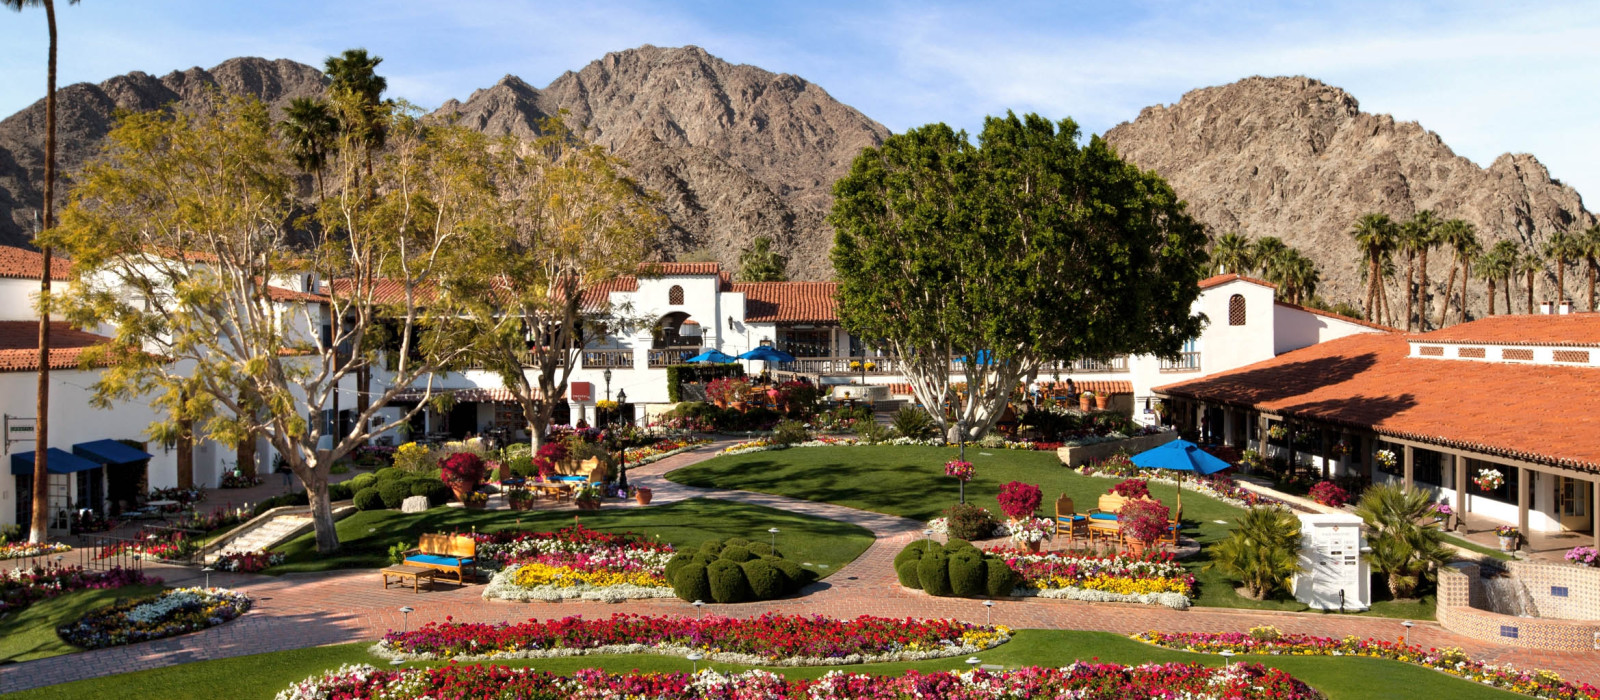 Hotel La Quinta Resort & Club USA